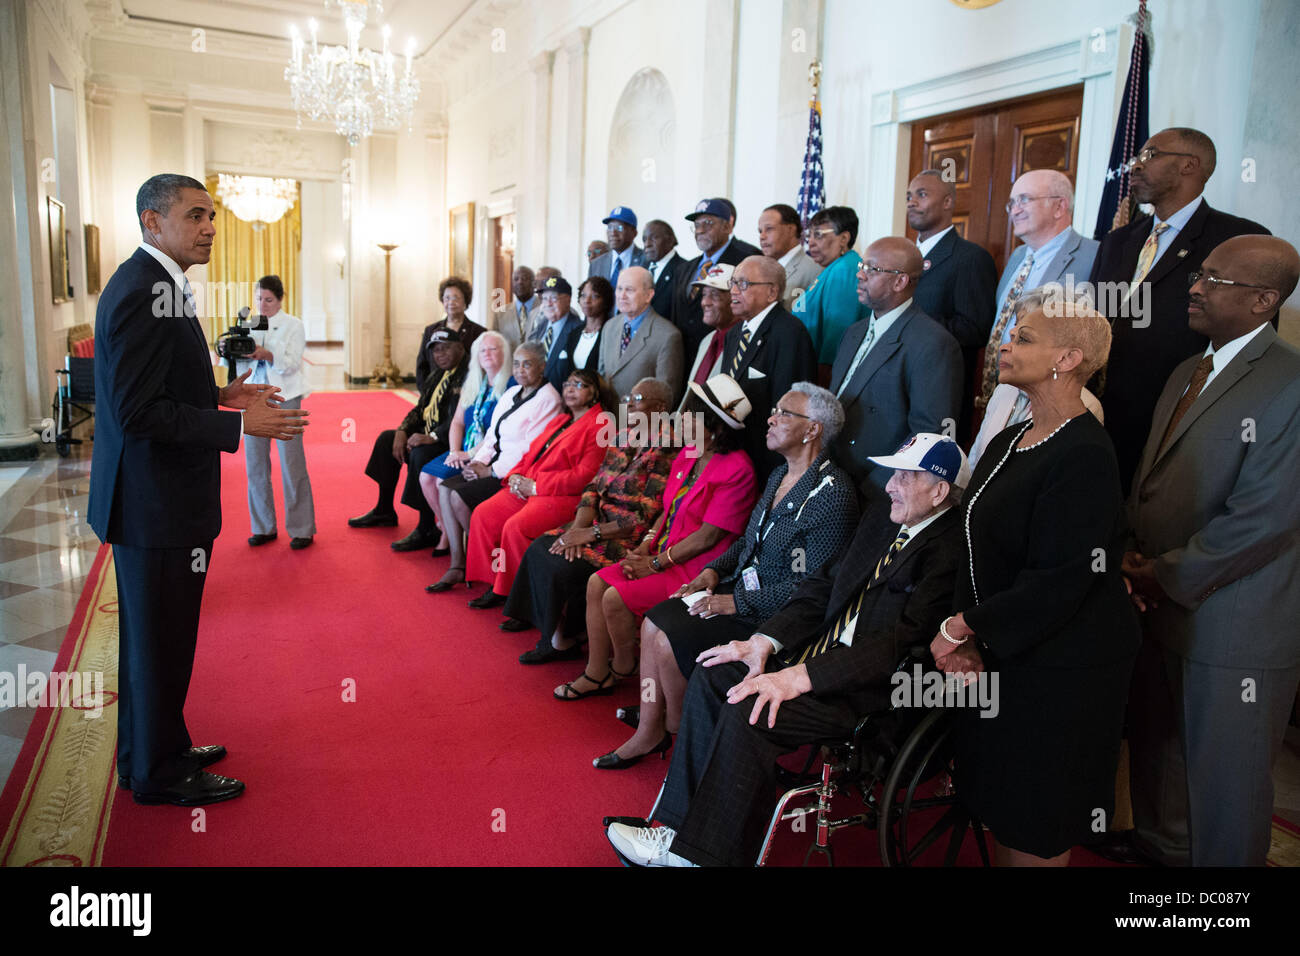 US President Barack Obama meets with former Negro League baseball players in the Grand Foyer of the White House - Stock Image